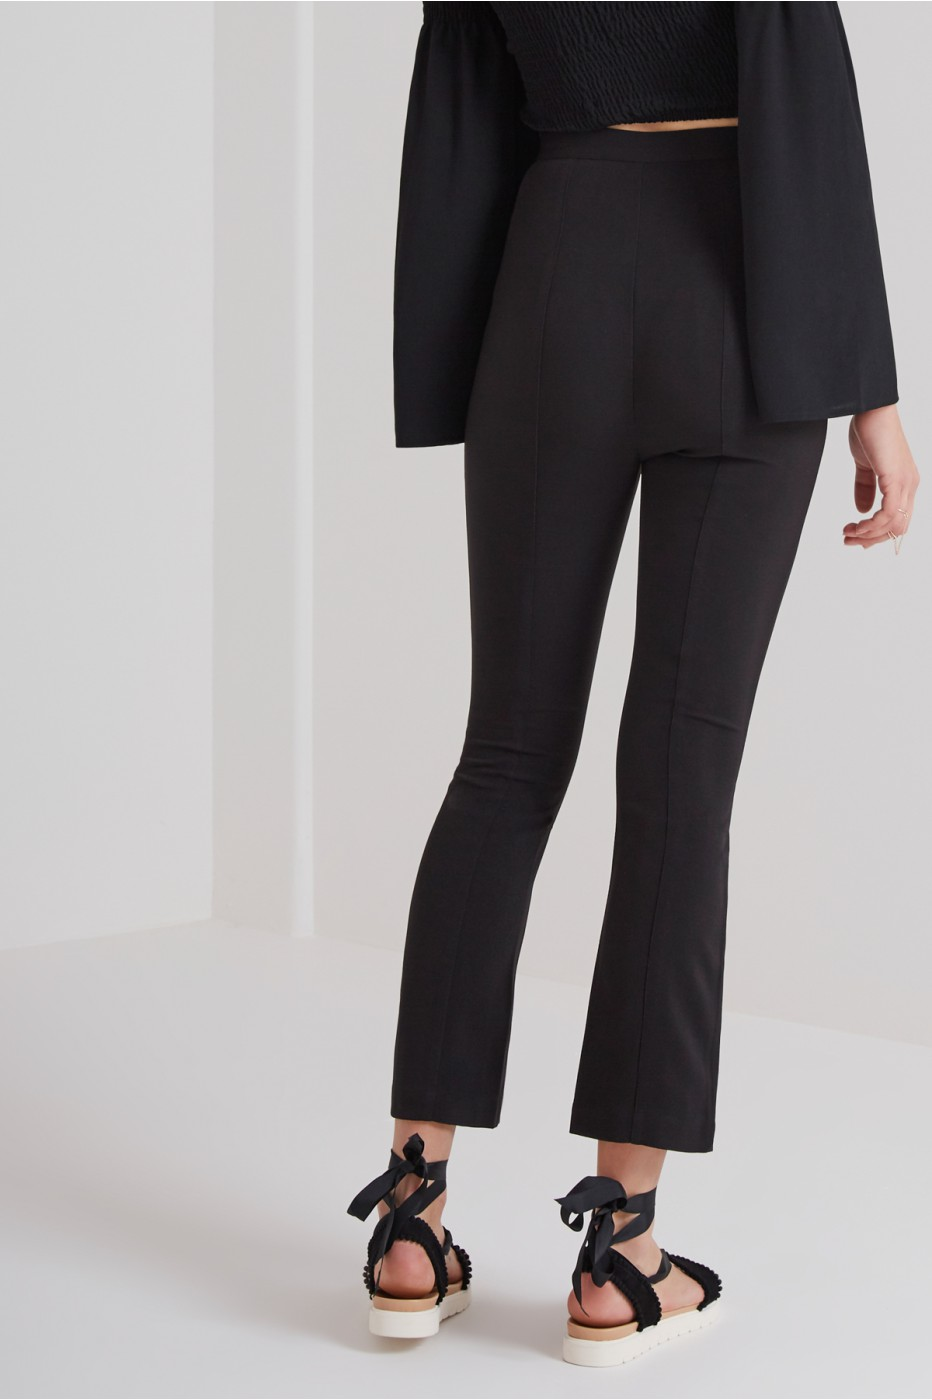 Shop The Fifth Romancing Pant.